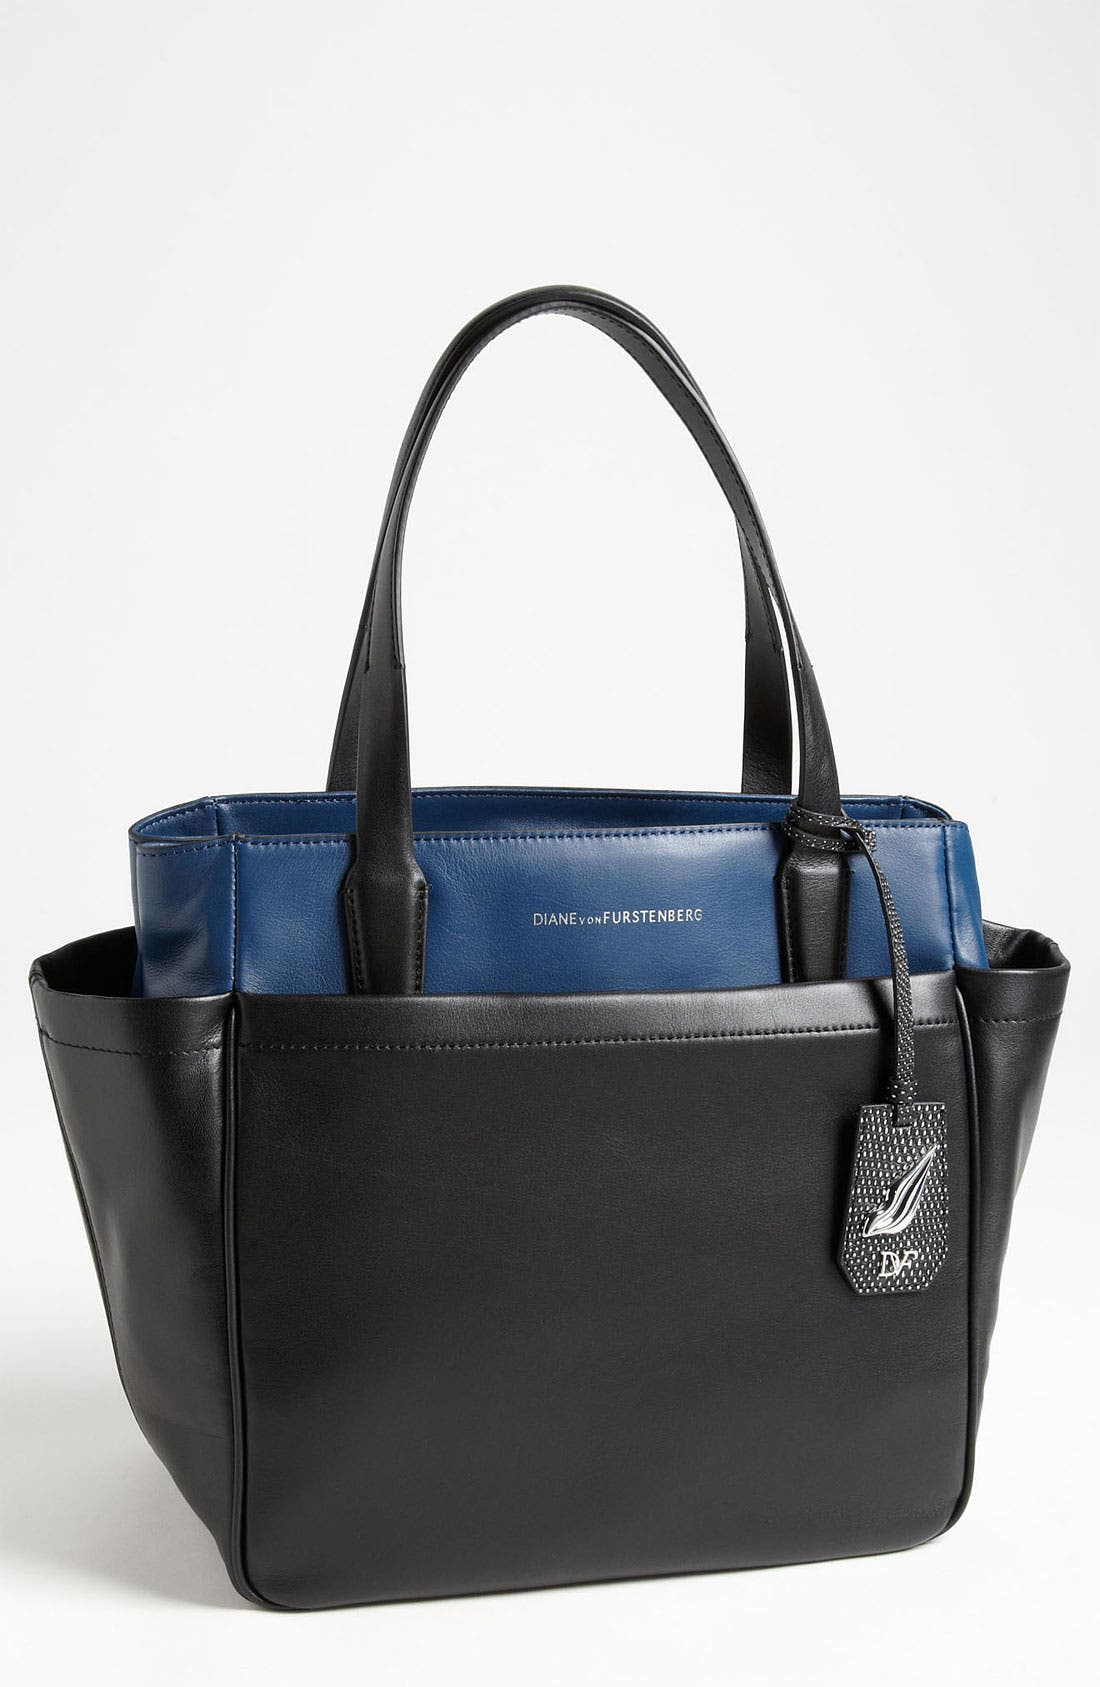 Main Image - Diane von Furstenberg 'On the Go' Tote